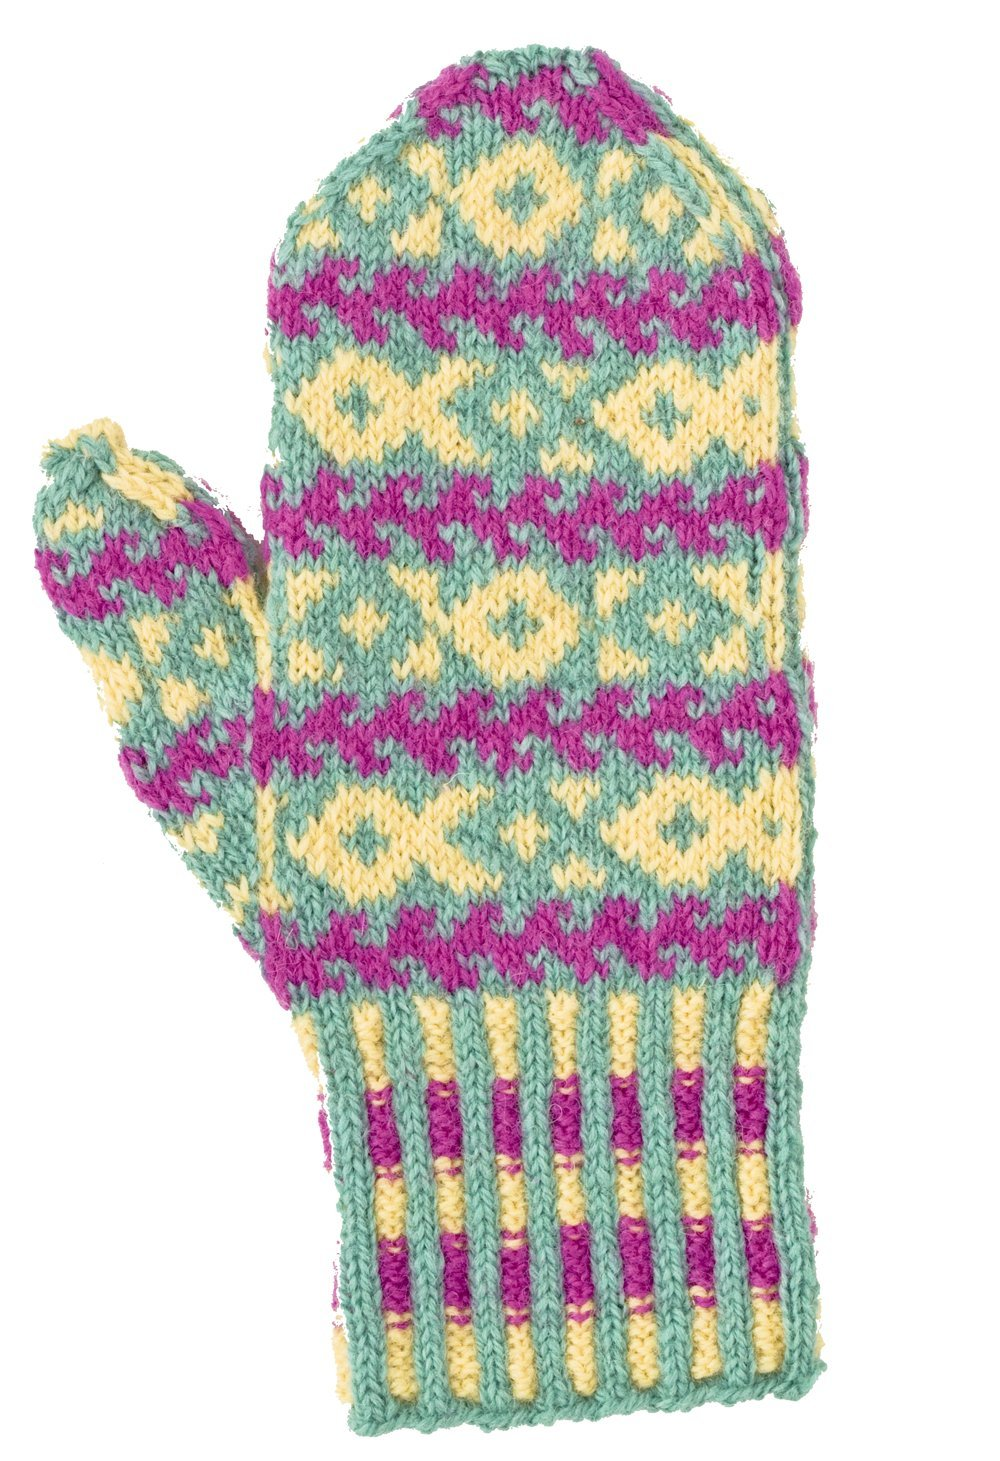 Mostly Mittens: Ethnic Knitting Designs from Russia: Charlene ...